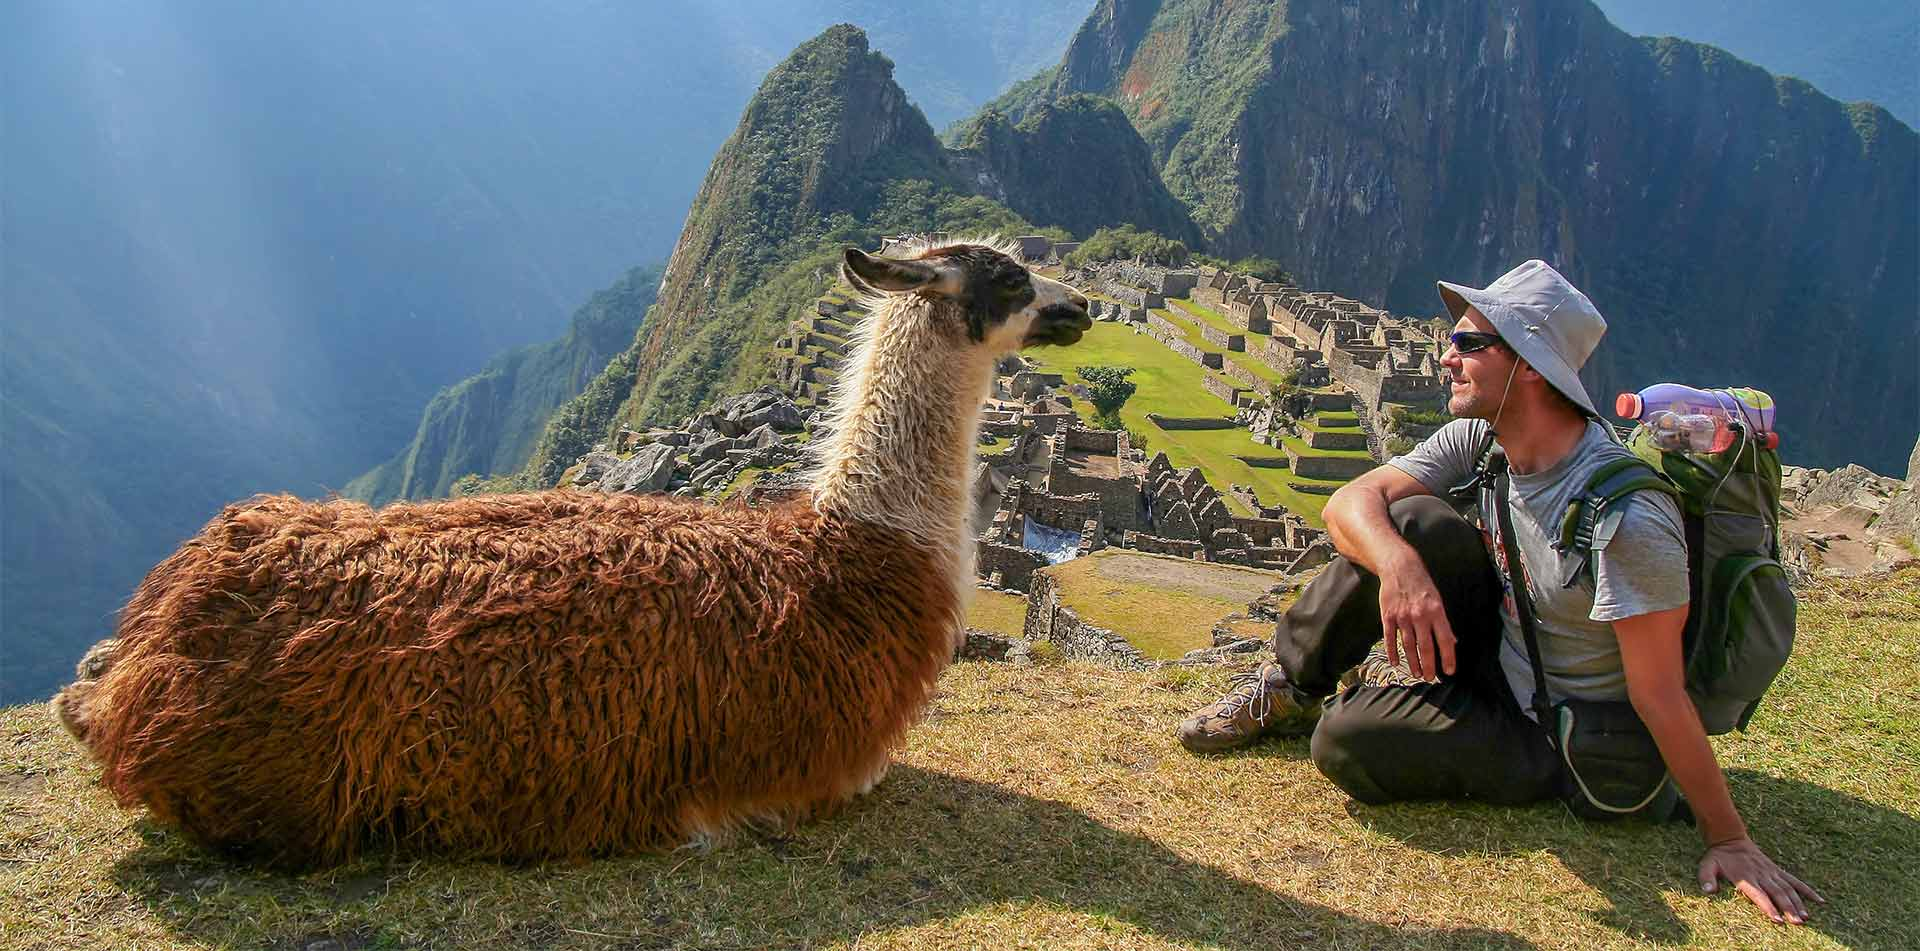 Tourist and llama sitting in front of Machu Picchu